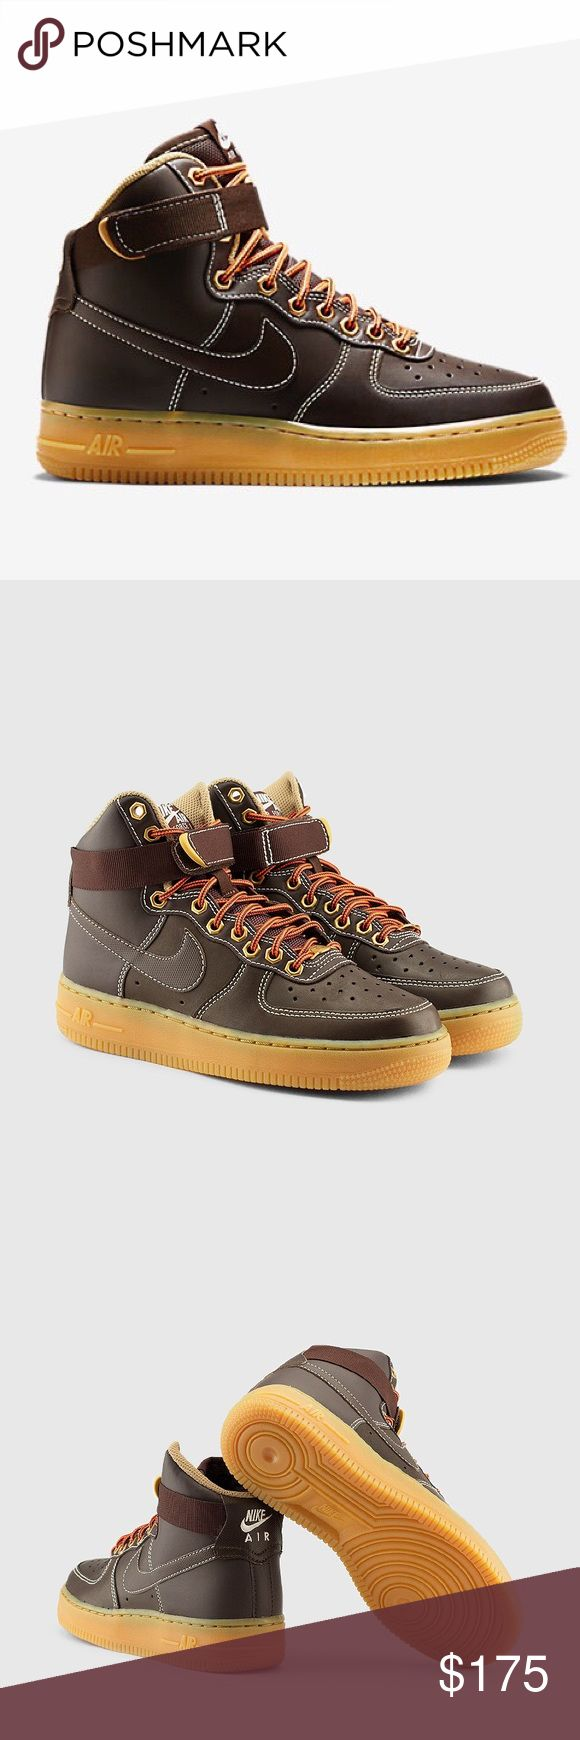 NIKE AIR FORCE 1 HIGH WOMENS SIZE 8 SHOES Shoes are a size 6.5 youth. Which is a women's size 8. I posted a sizing chart for your convenience. Brand new without box. 100% authentic Nike Shoes Sneakers